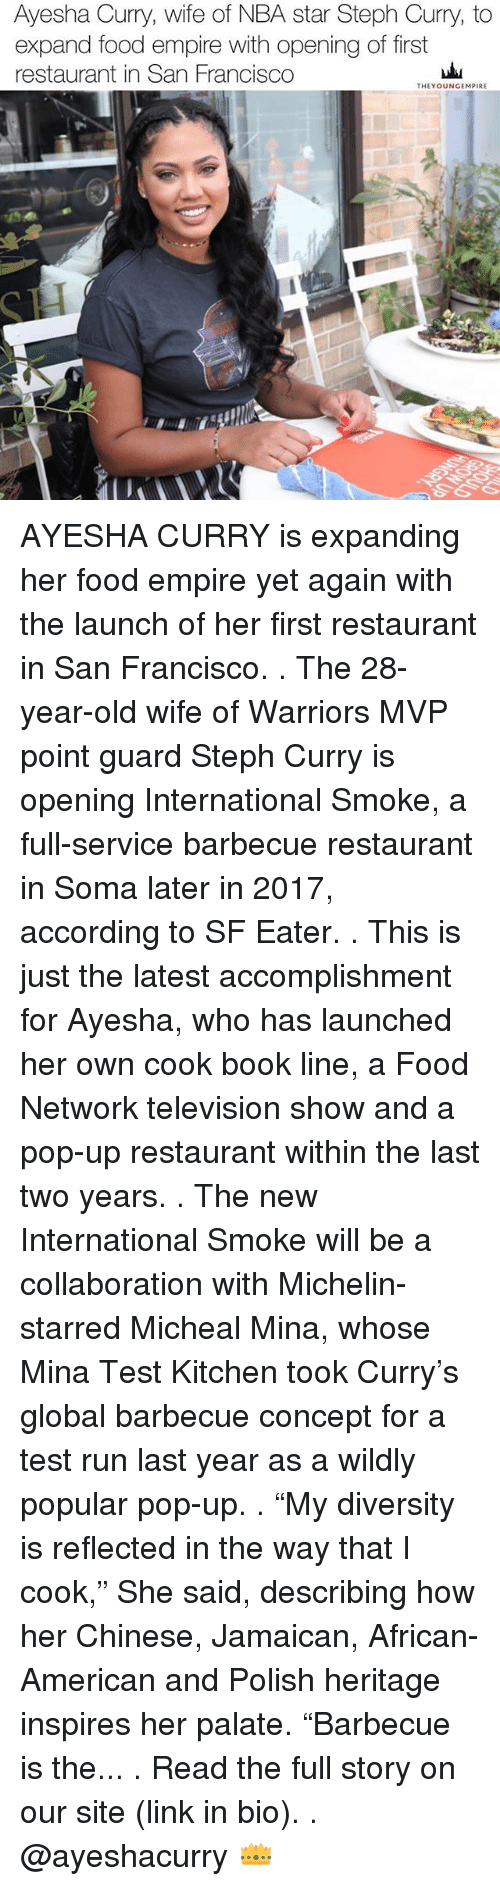 "soma: Ayesha Curry, wife of NBA star Steph Curry, to  expand food empire with opening of first  restaurant in San Francisco  THEY OUNGEMPIRE AYESHA CURRY is expanding her food empire yet again with the launch of her first restaurant in San Francisco. . The 28-year-old wife of Warriors MVP point guard Steph Curry is opening International Smoke, a full-service barbecue restaurant in Soma later in 2017, according to SF Eater. . This is just the latest accomplishment for Ayesha, who has launched her own cook book line, a Food Network television show and a pop-up restaurant within the last two years. . The new International Smoke will be a collaboration with Michelin-starred Micheal Mina, whose Mina Test Kitchen took Curry's global barbecue concept for a test run last year as a wildly popular pop-up. . ""My diversity is reflected in the way that I cook,"" She said, describing how her Chinese, Jamaican, African-American and Polish heritage inspires her palate. ""Barbecue is the... . Read the full story on our site (link in bio). . @ayeshacurry 👑"